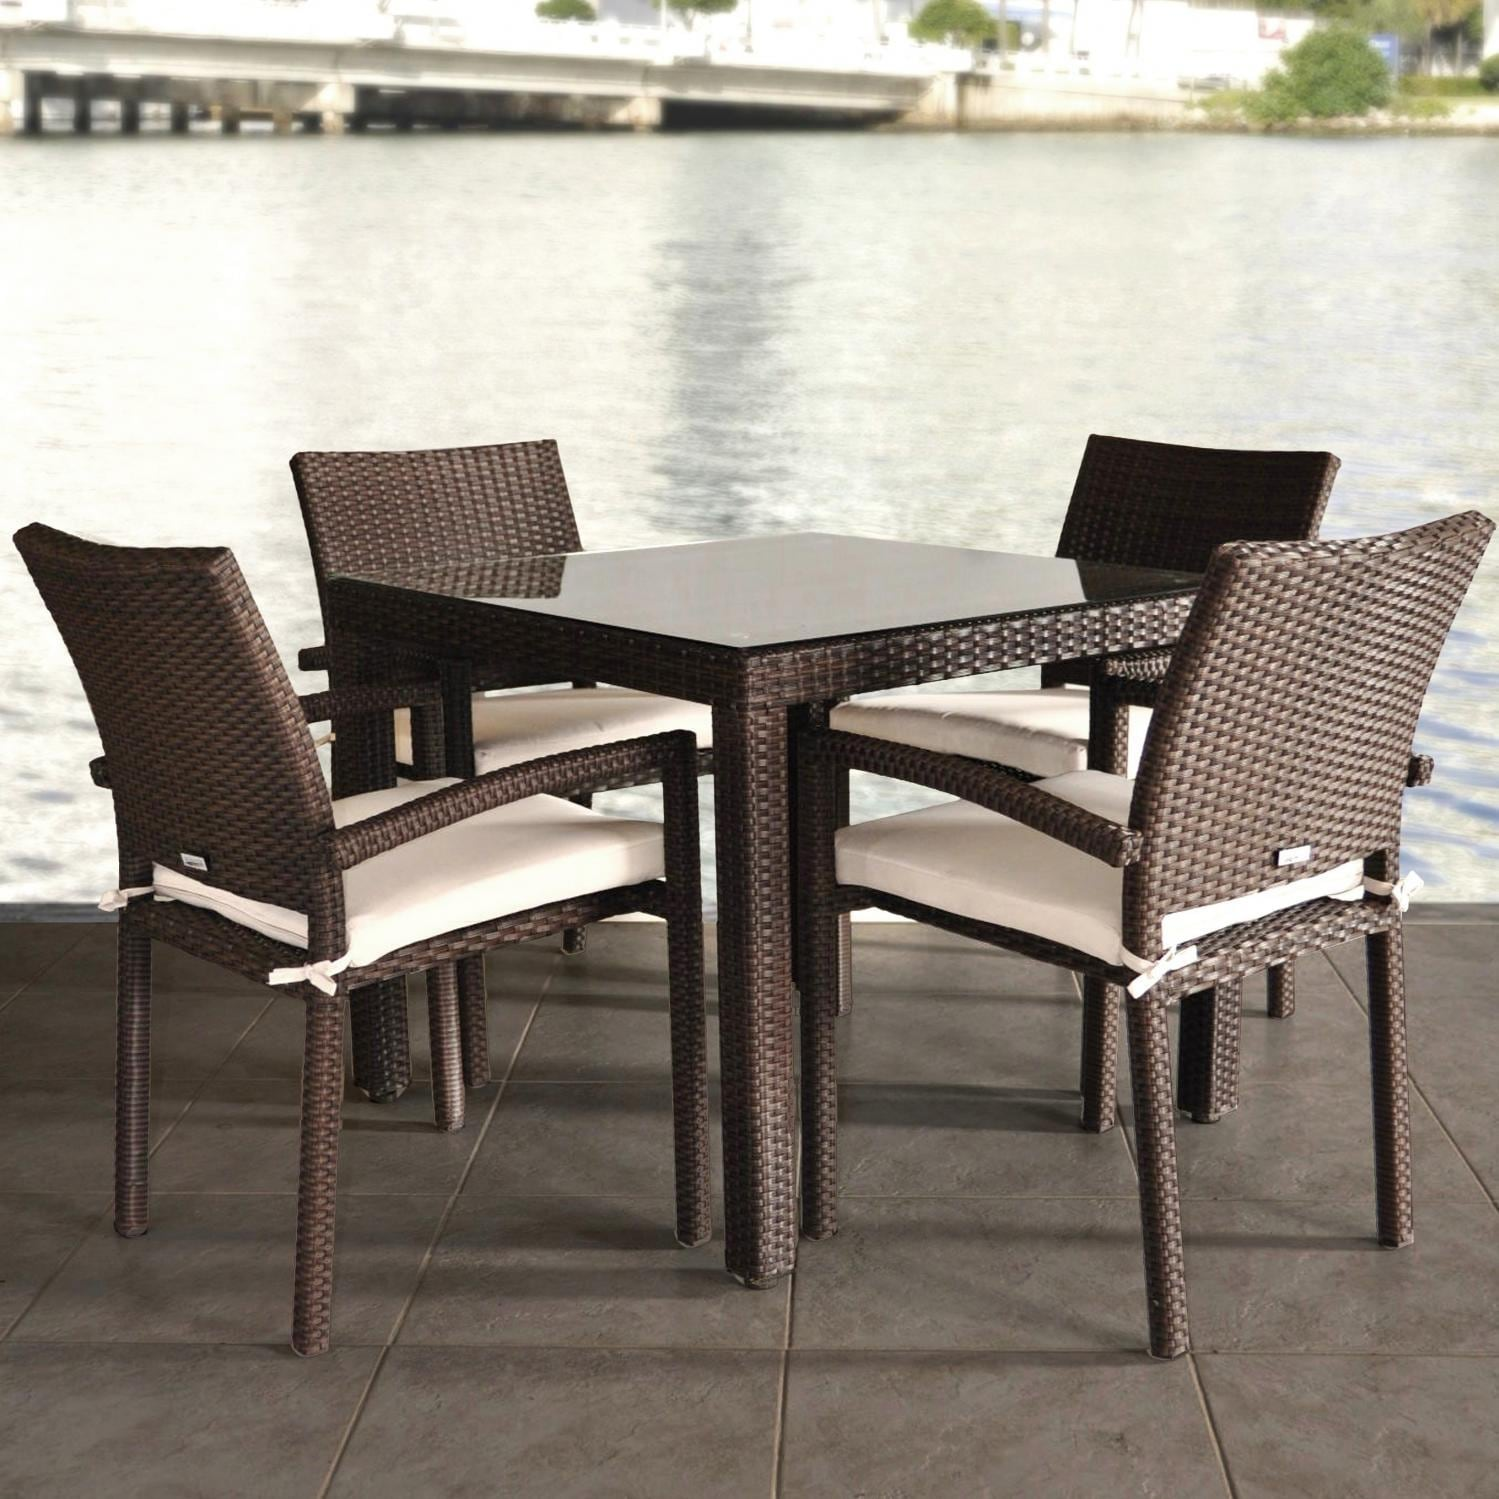 Atlantic liberty 4 person resin wicker patio dining set with glass top table and stacking chairs bbq guys